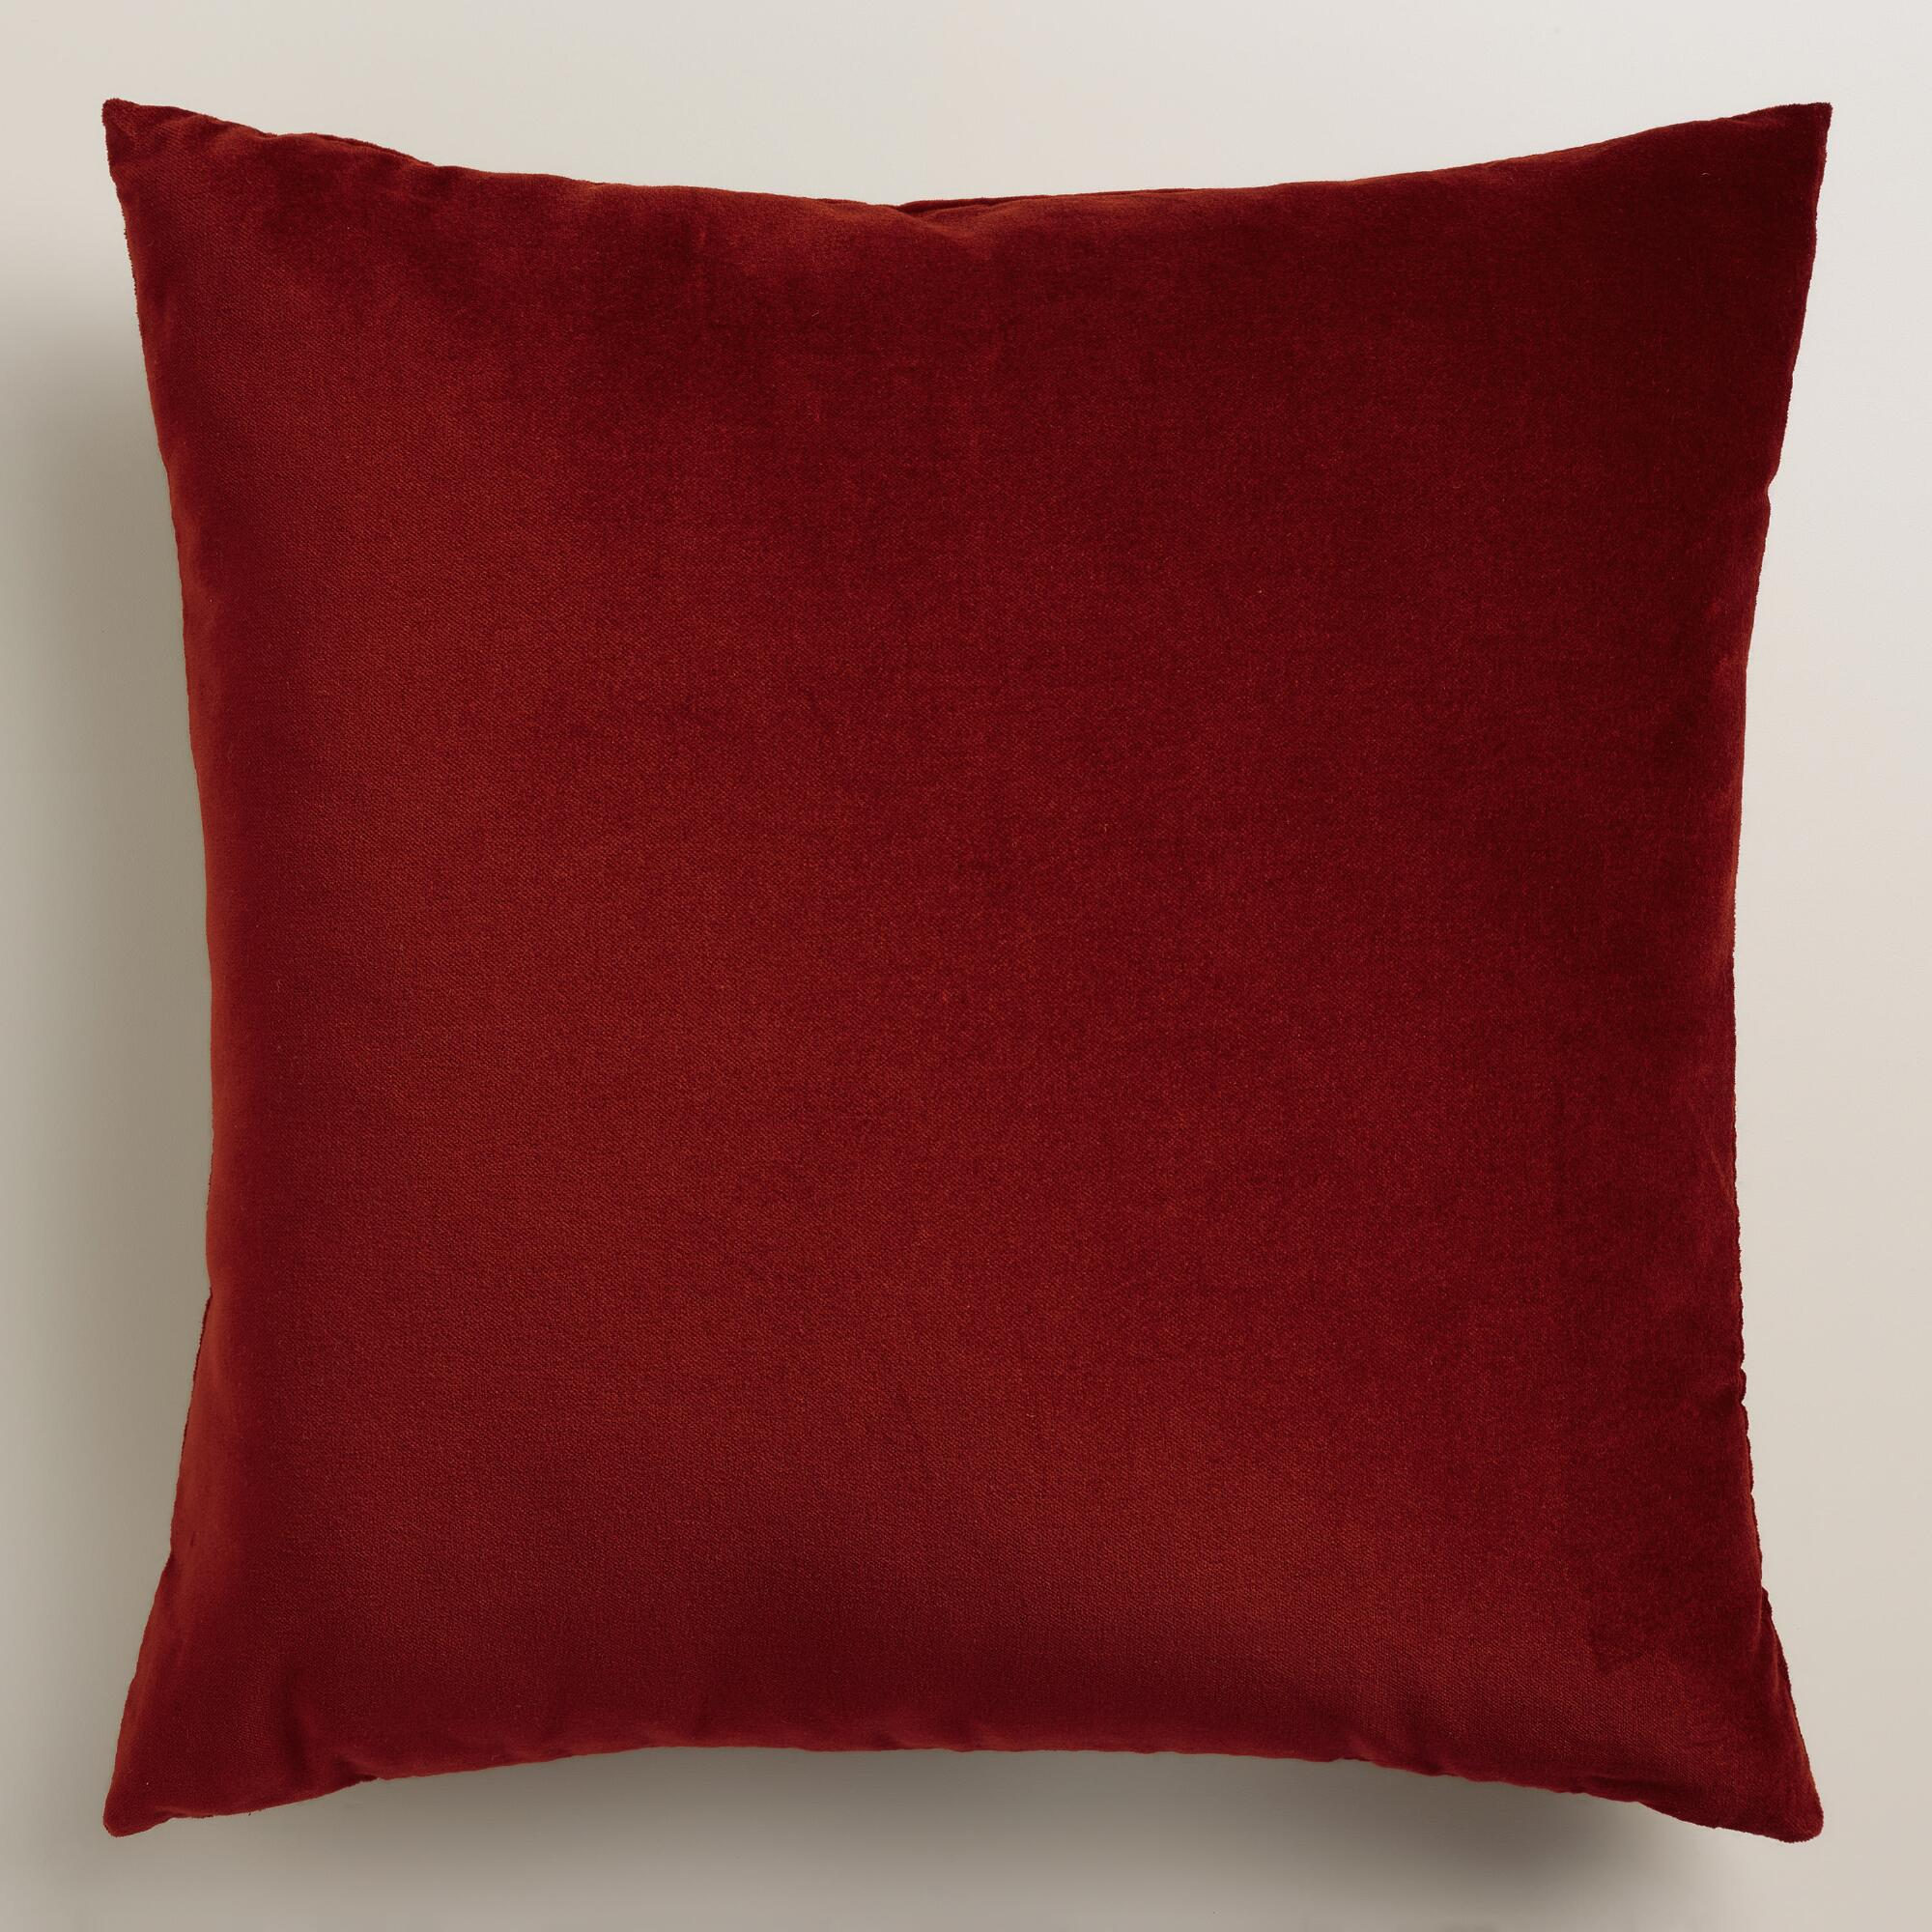 Red Throw Pillows For Bed : Classic Red Velvet Throw Pillow World Market